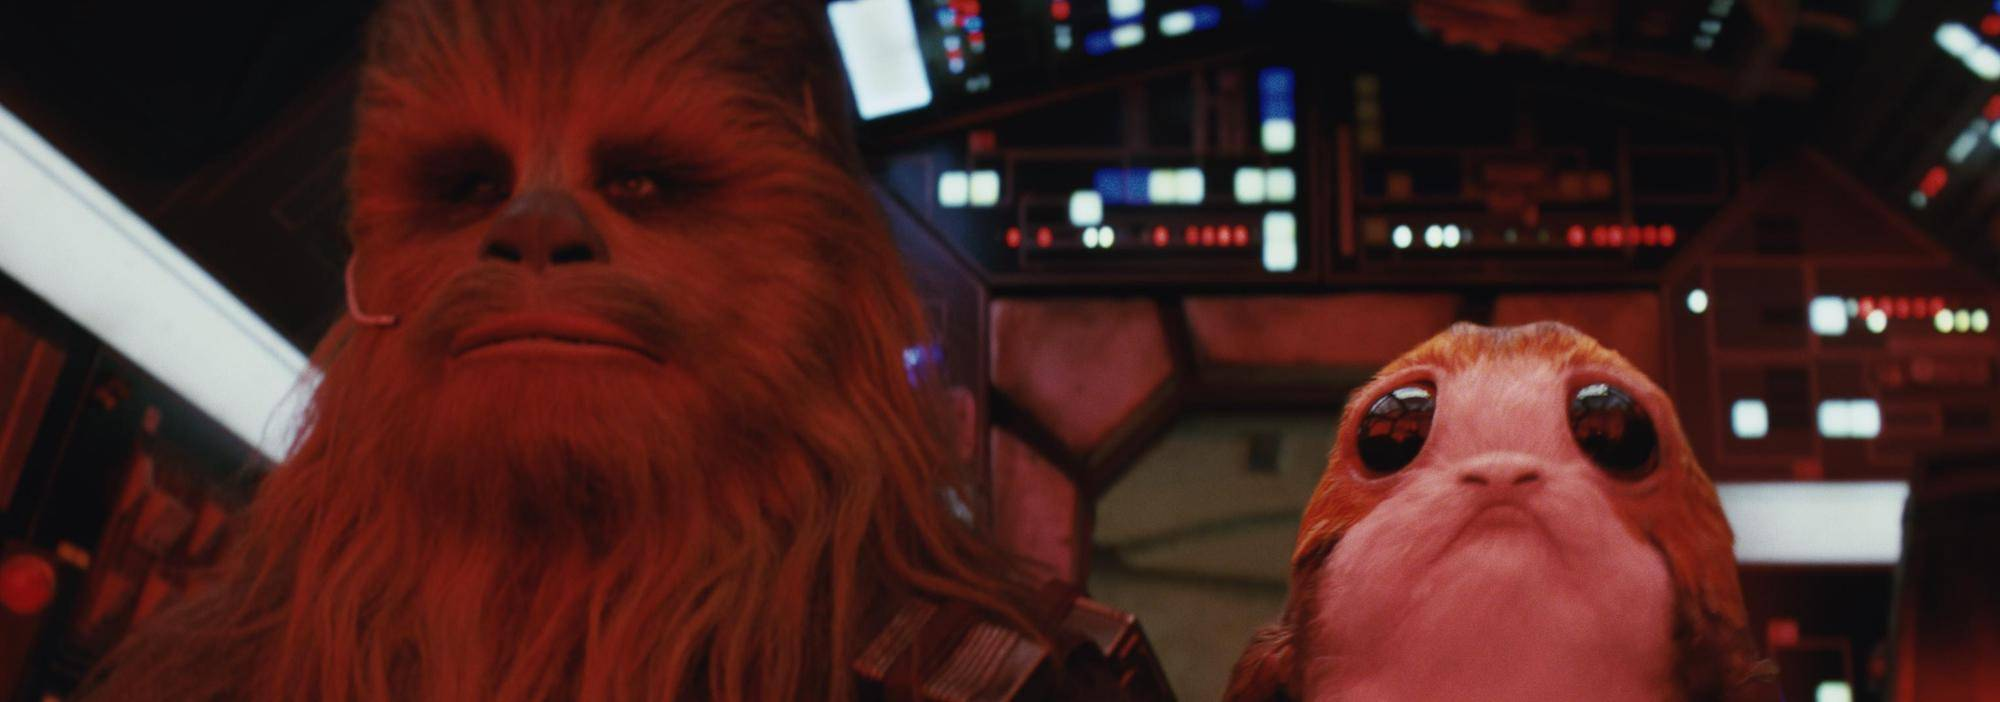 Chewie and Porgs Header Image